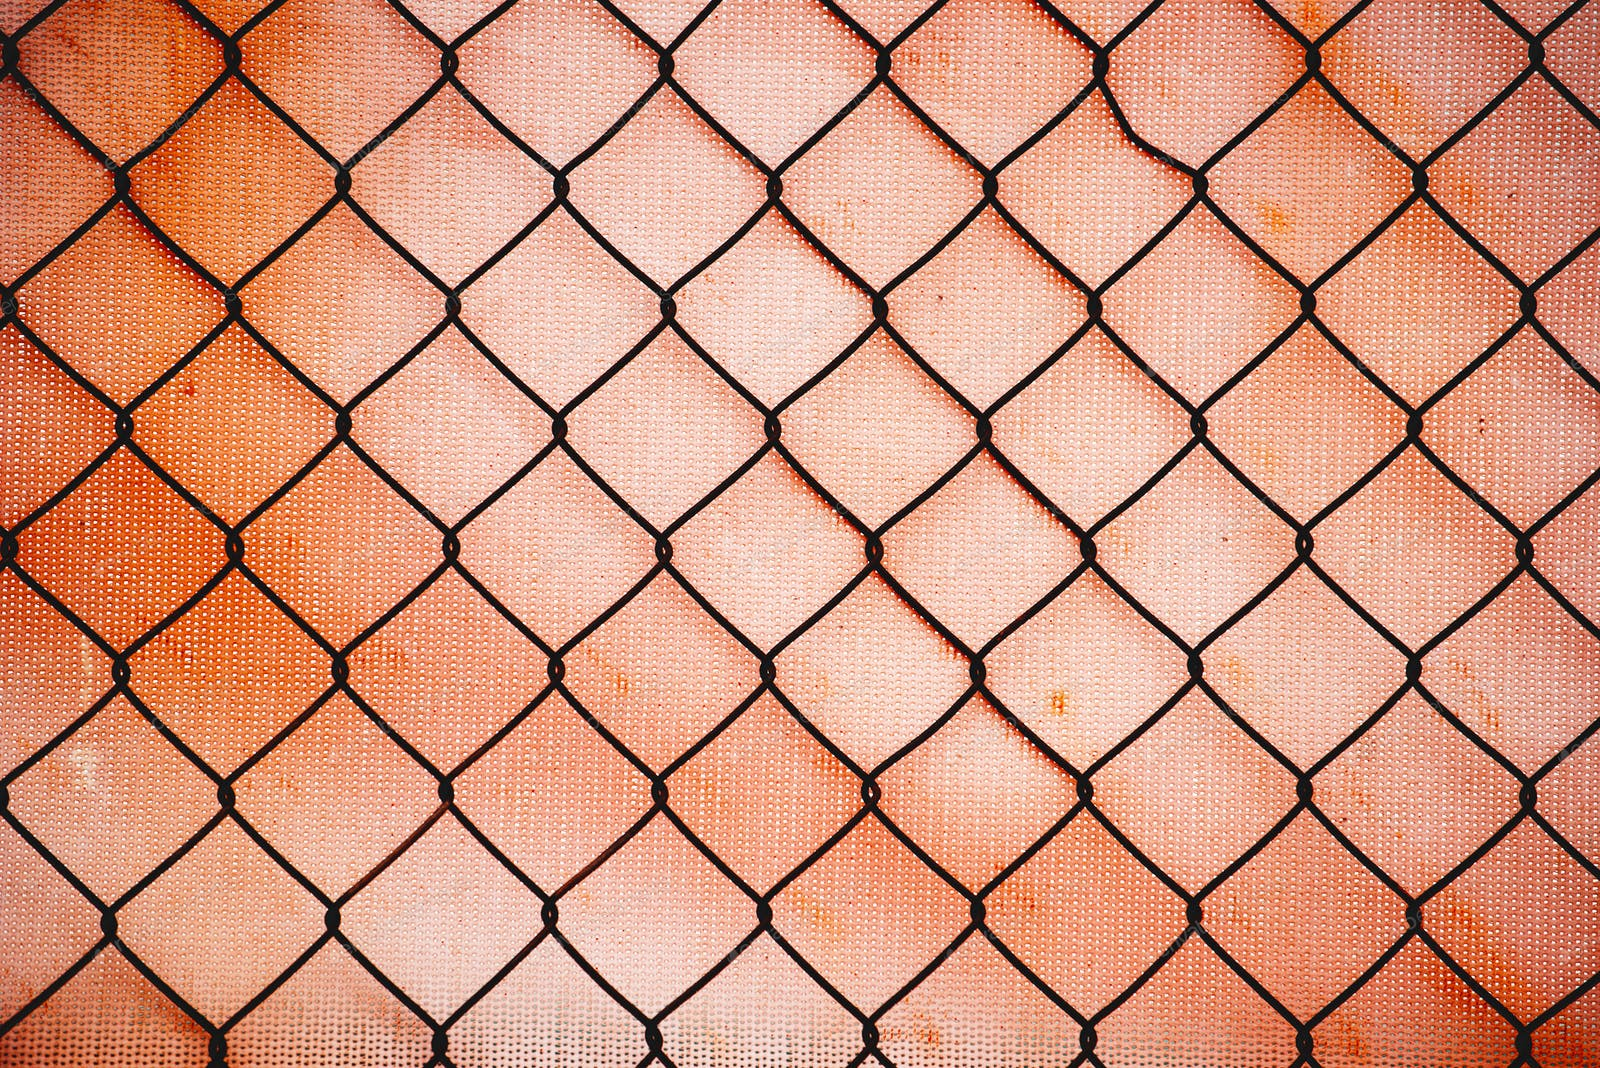 Rusty Chain Link Fence Photo By Stevanovicigor On Envato Elements